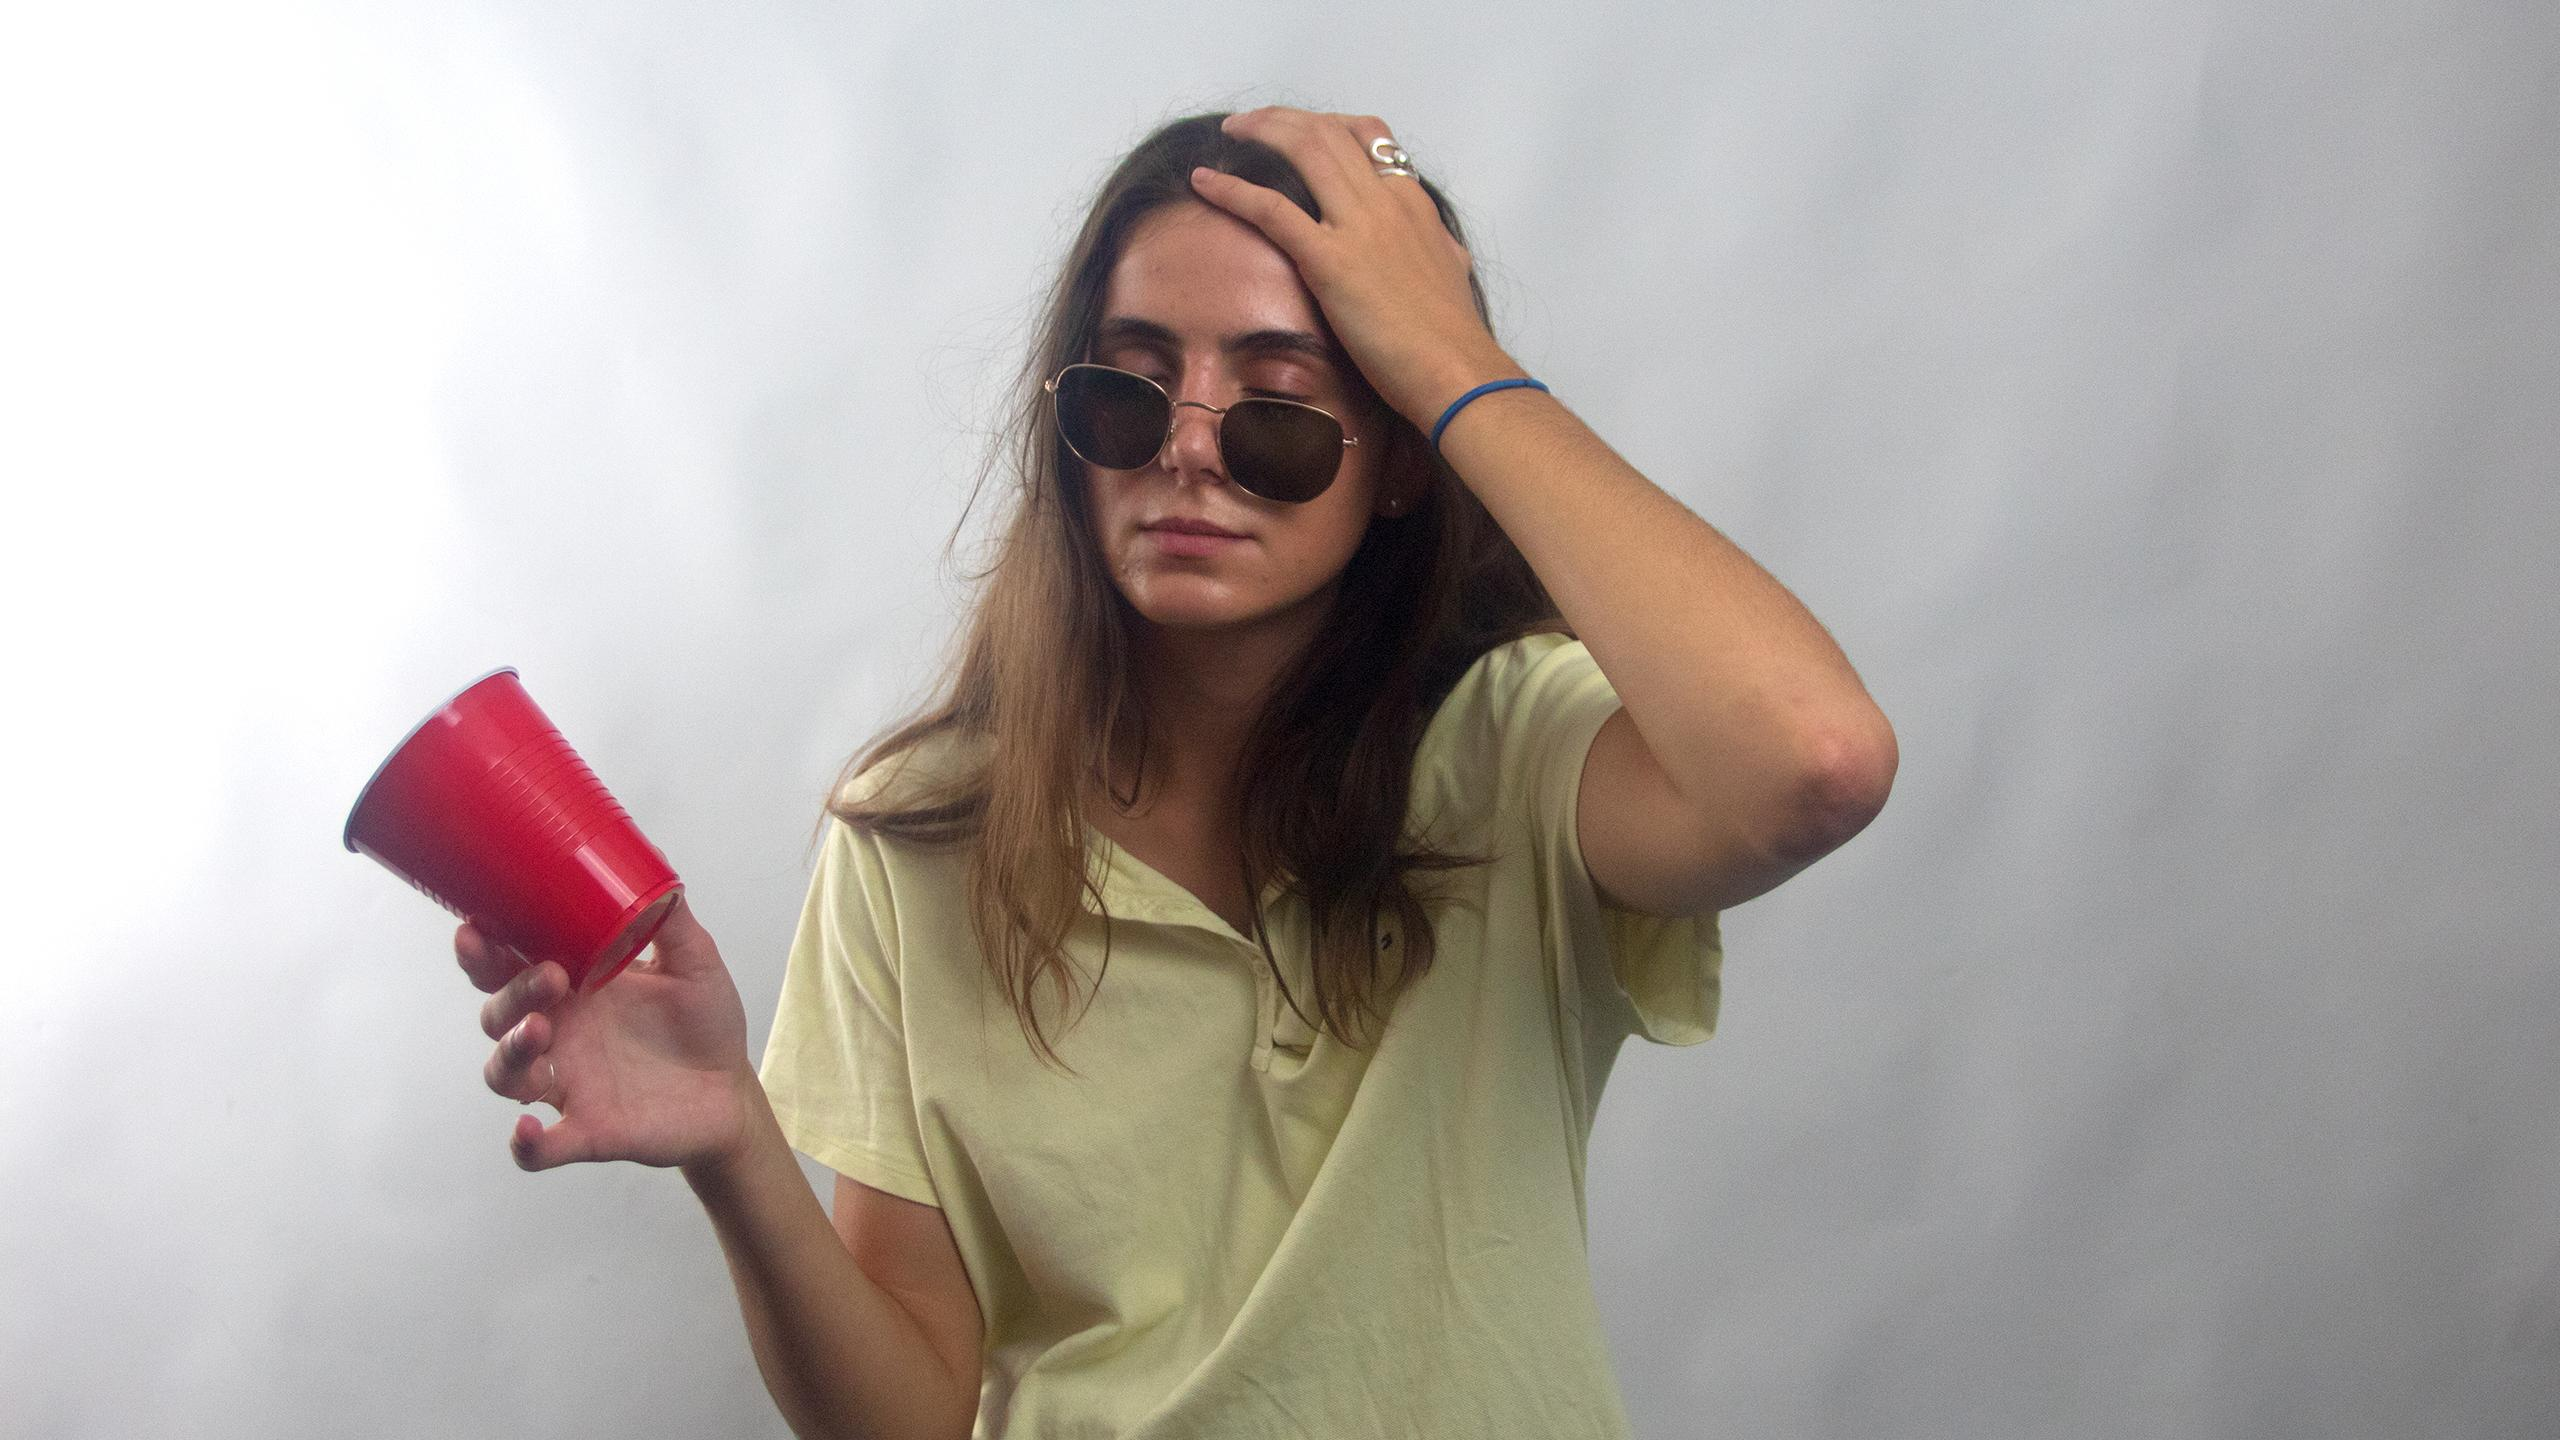 Hungover girl wearing askew sunglasses and a yellow polo shirt with mismatched buttons holding a red solo cup in one hand and the other hand holding her head